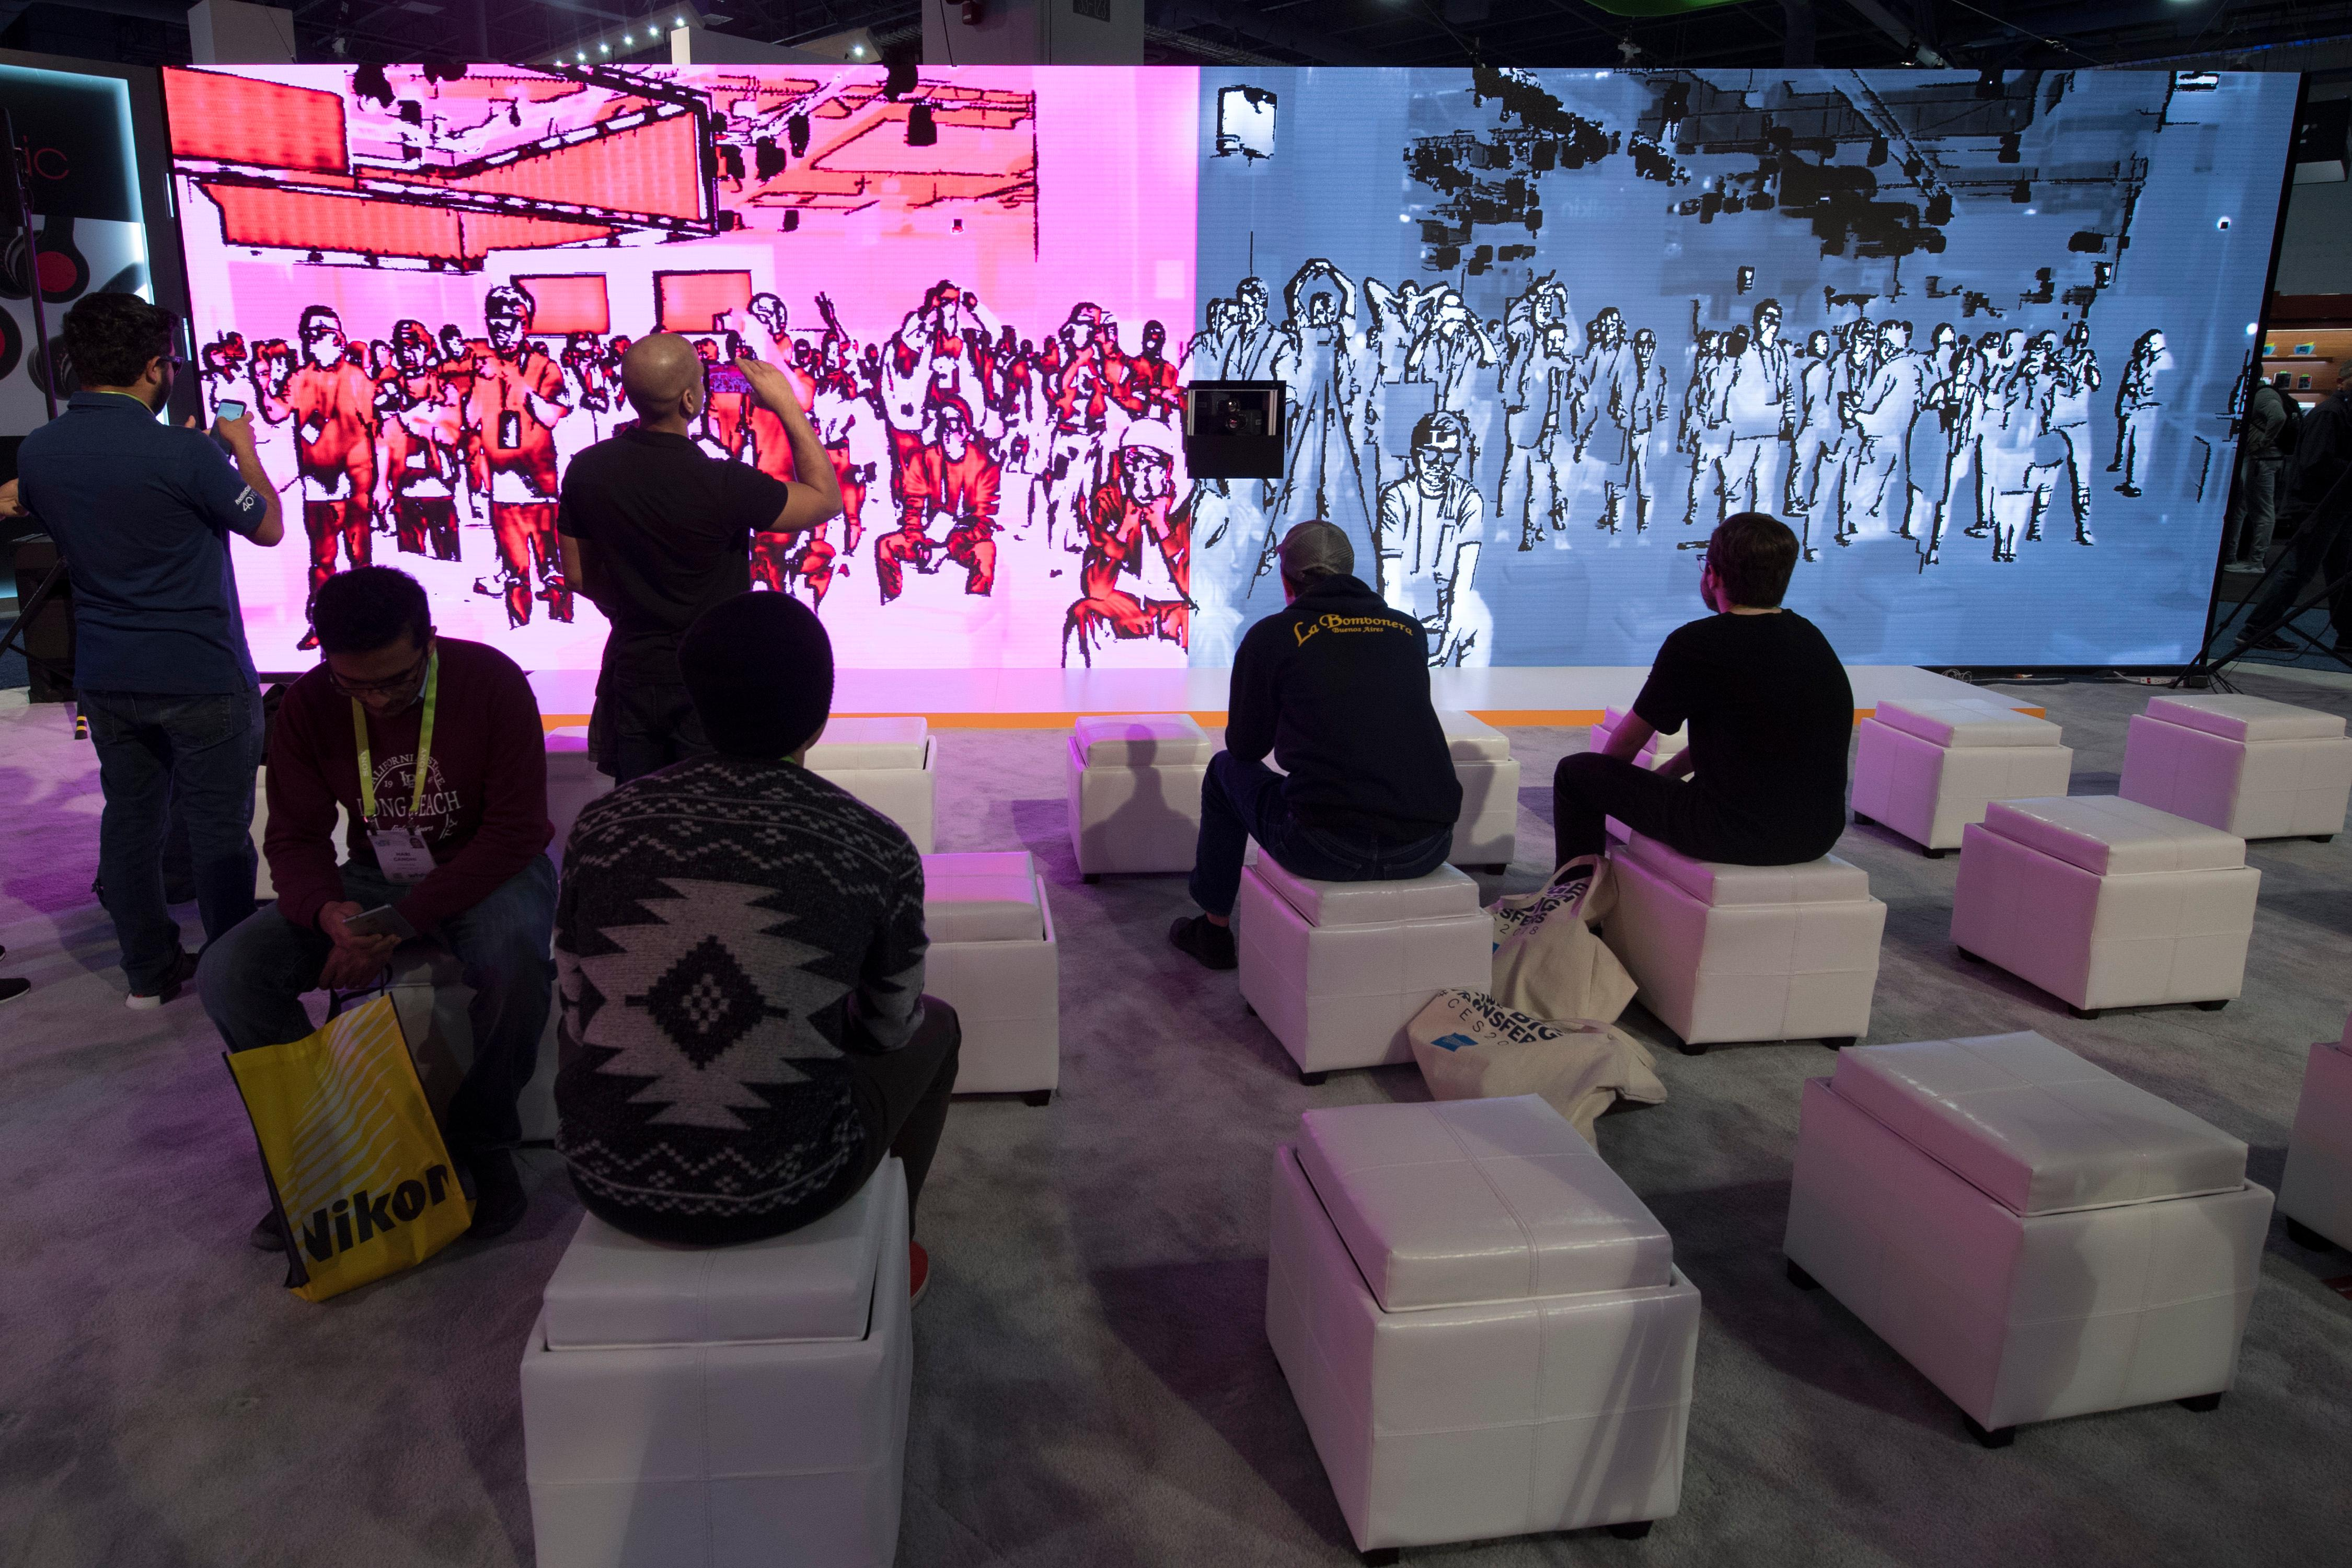 Attendees watch a live display at the FLIR booth during the second day of CES Wednesday, January 10, 2018, at the Las Vegas Convention Center. CREDIT: Sam Morris/Las Vegas News Bureau